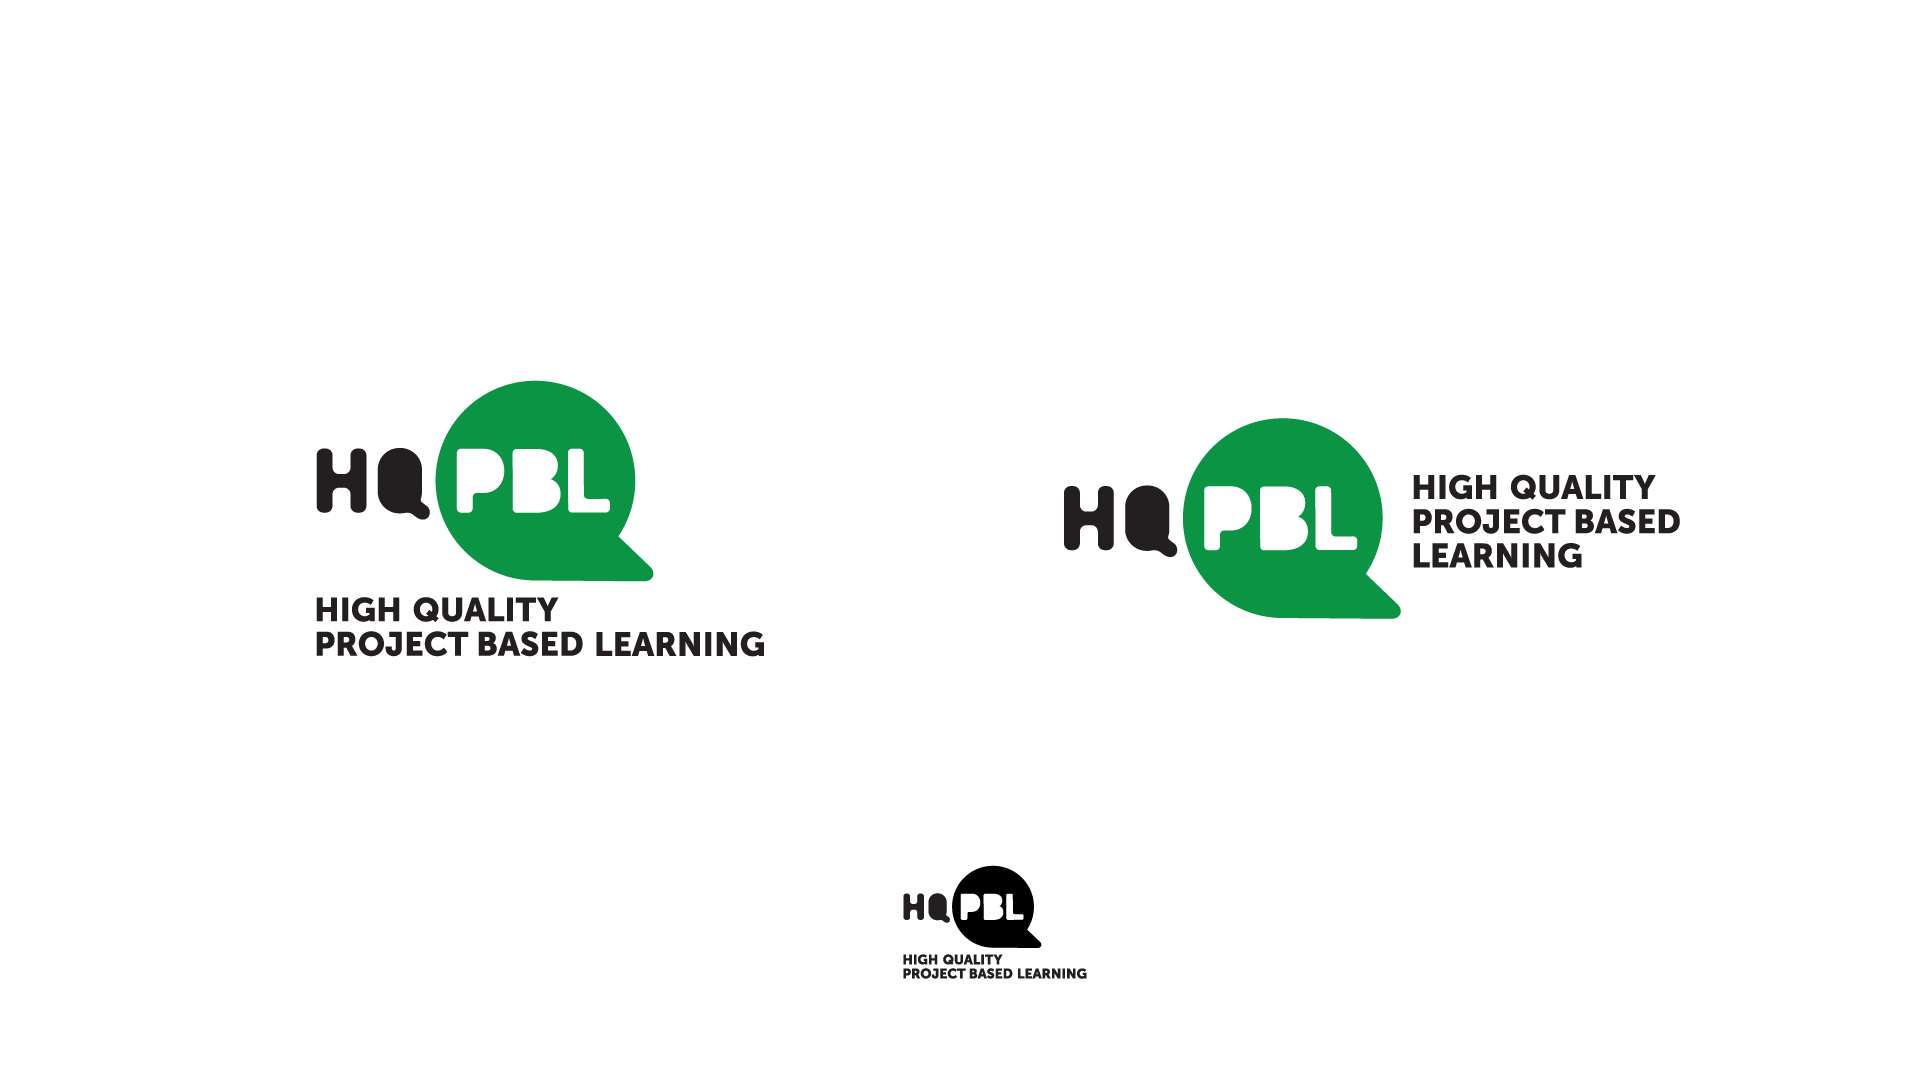 This design concept was inspired by the power skills of collaboration and communication that are among the benefits of project-based learning. The speech bubble is representative of the Q and creates a strong, iconic mark. These options explore the full abbreviation of HQPBL and is paired with the full written text in both horizontal and stacked formats . The logo below shows how it works in one color and when it is reduced to a very small size.